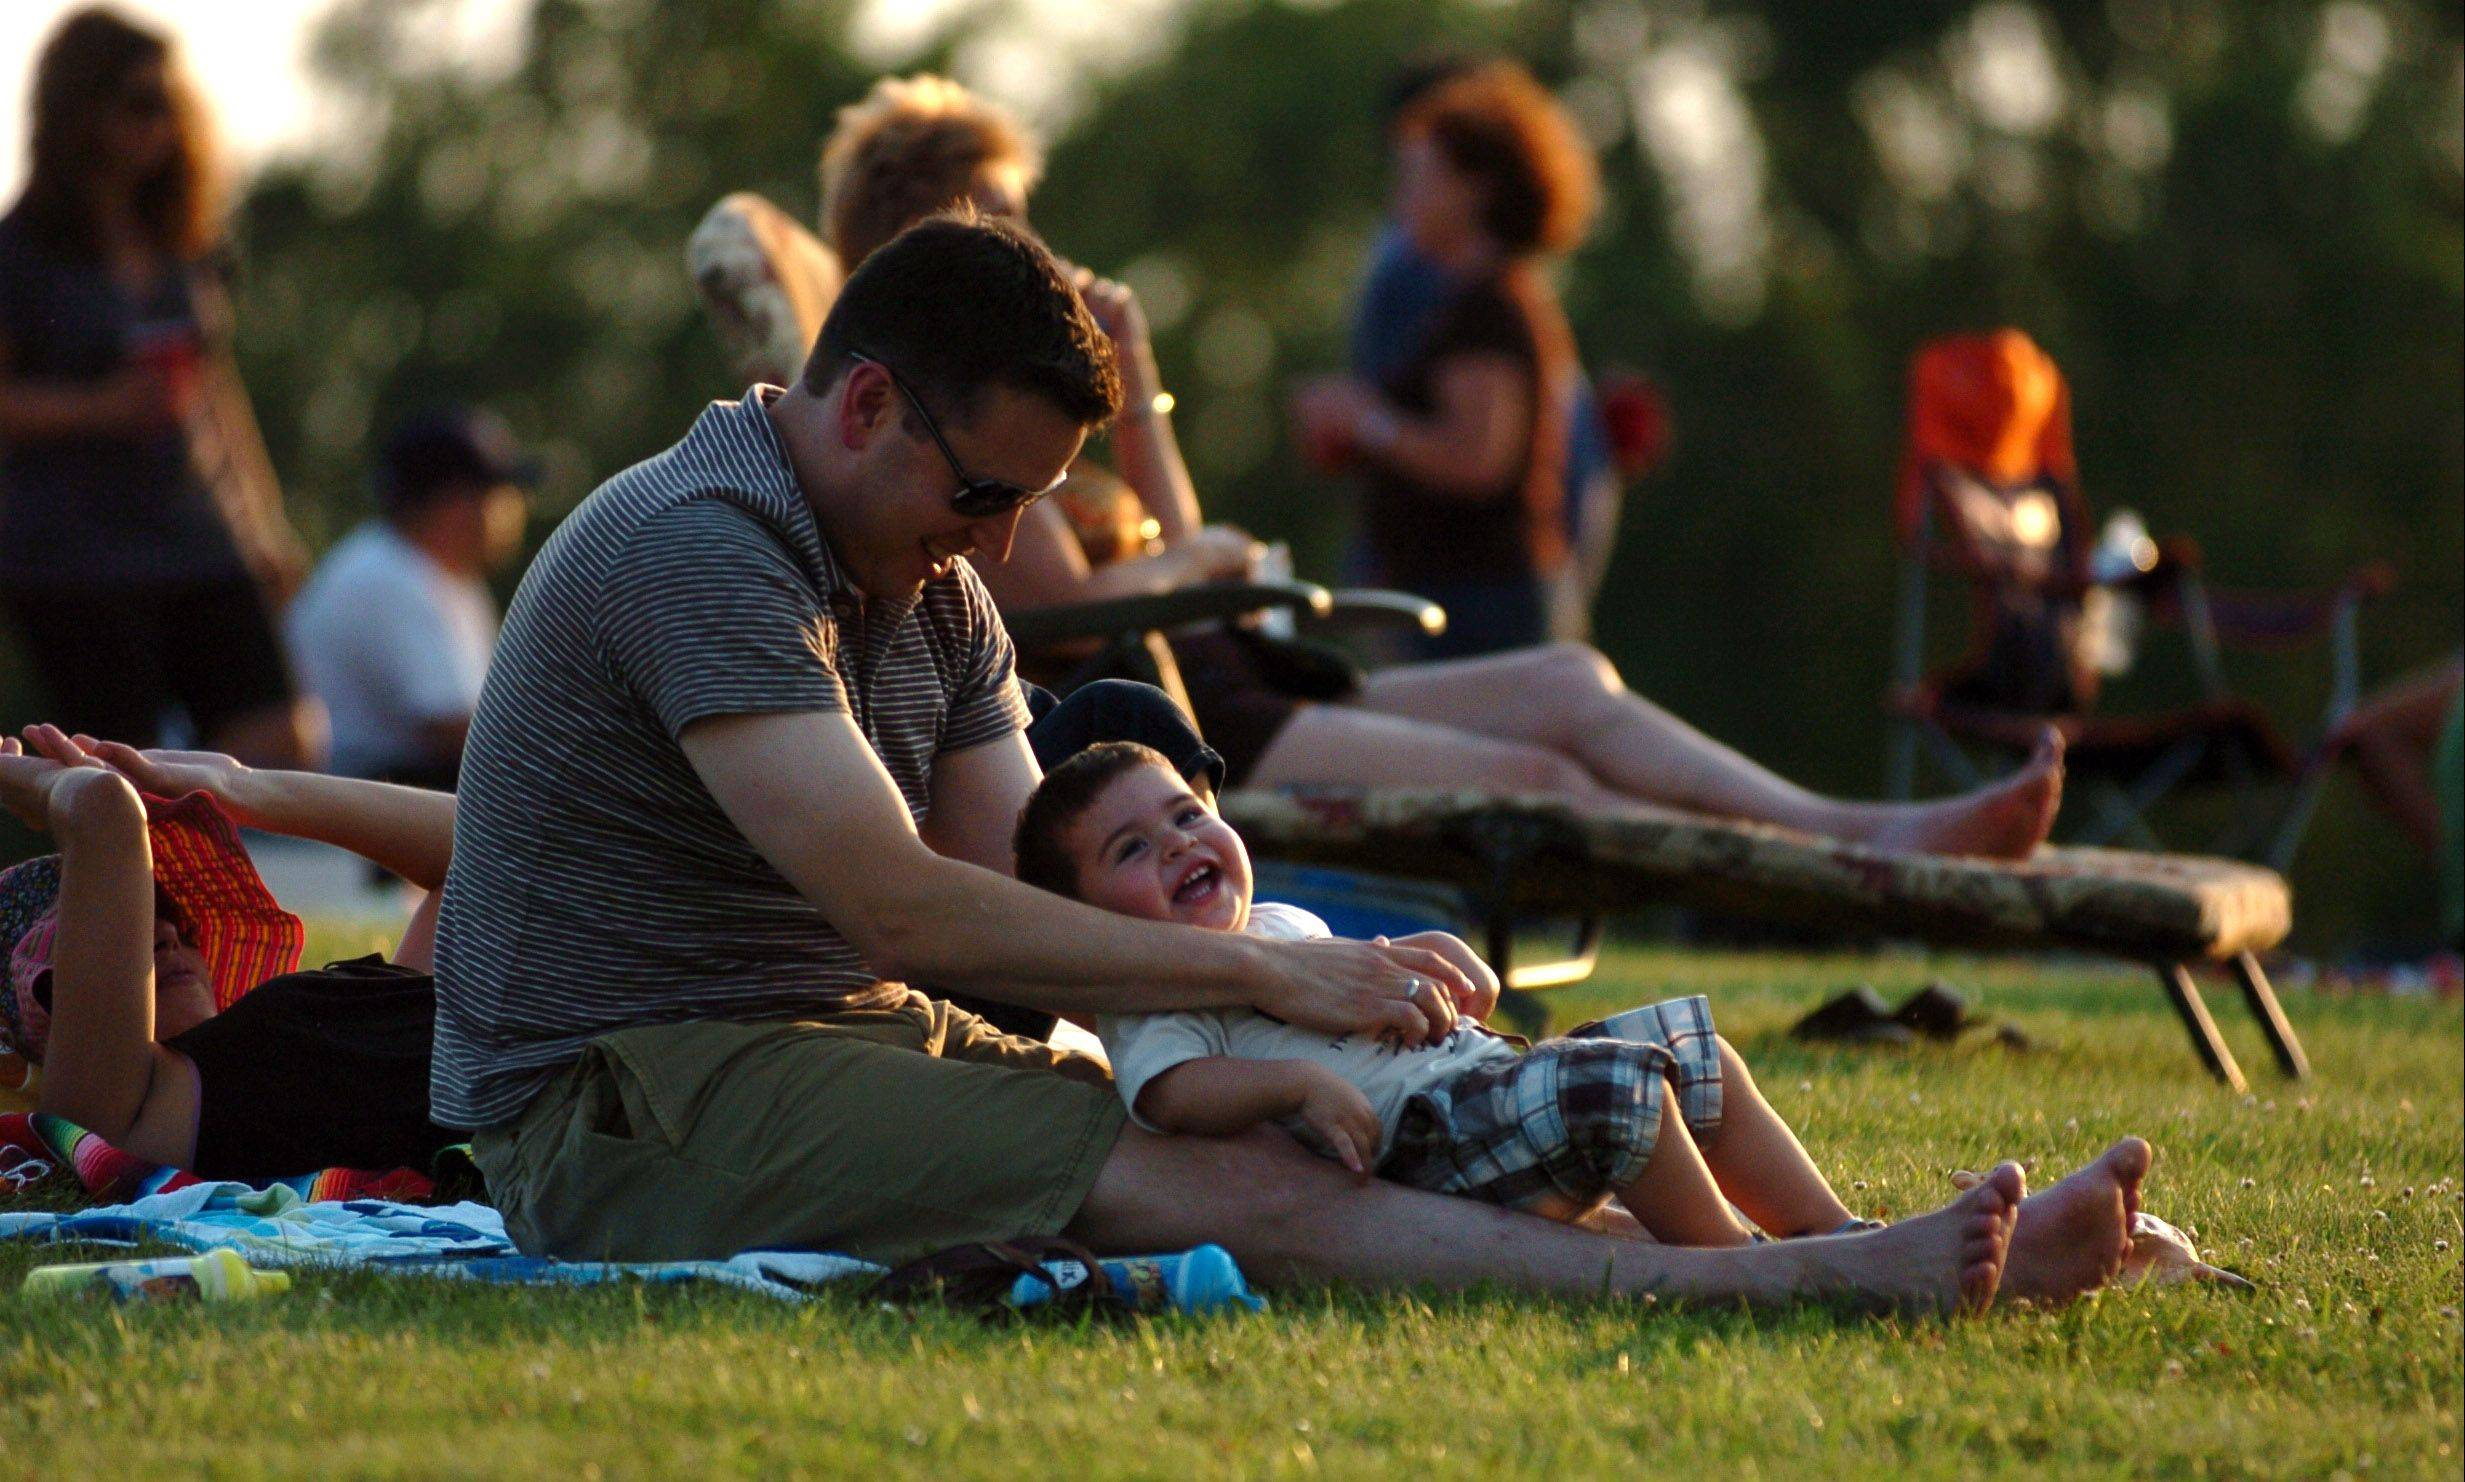 James Cook of Cary plays with his 16-month-old son Felix at a previous Cary Kickoff to Fourth of July at Lions Park. This year's event, set for Wednesday, July 3, features live music, food, and fireworks.